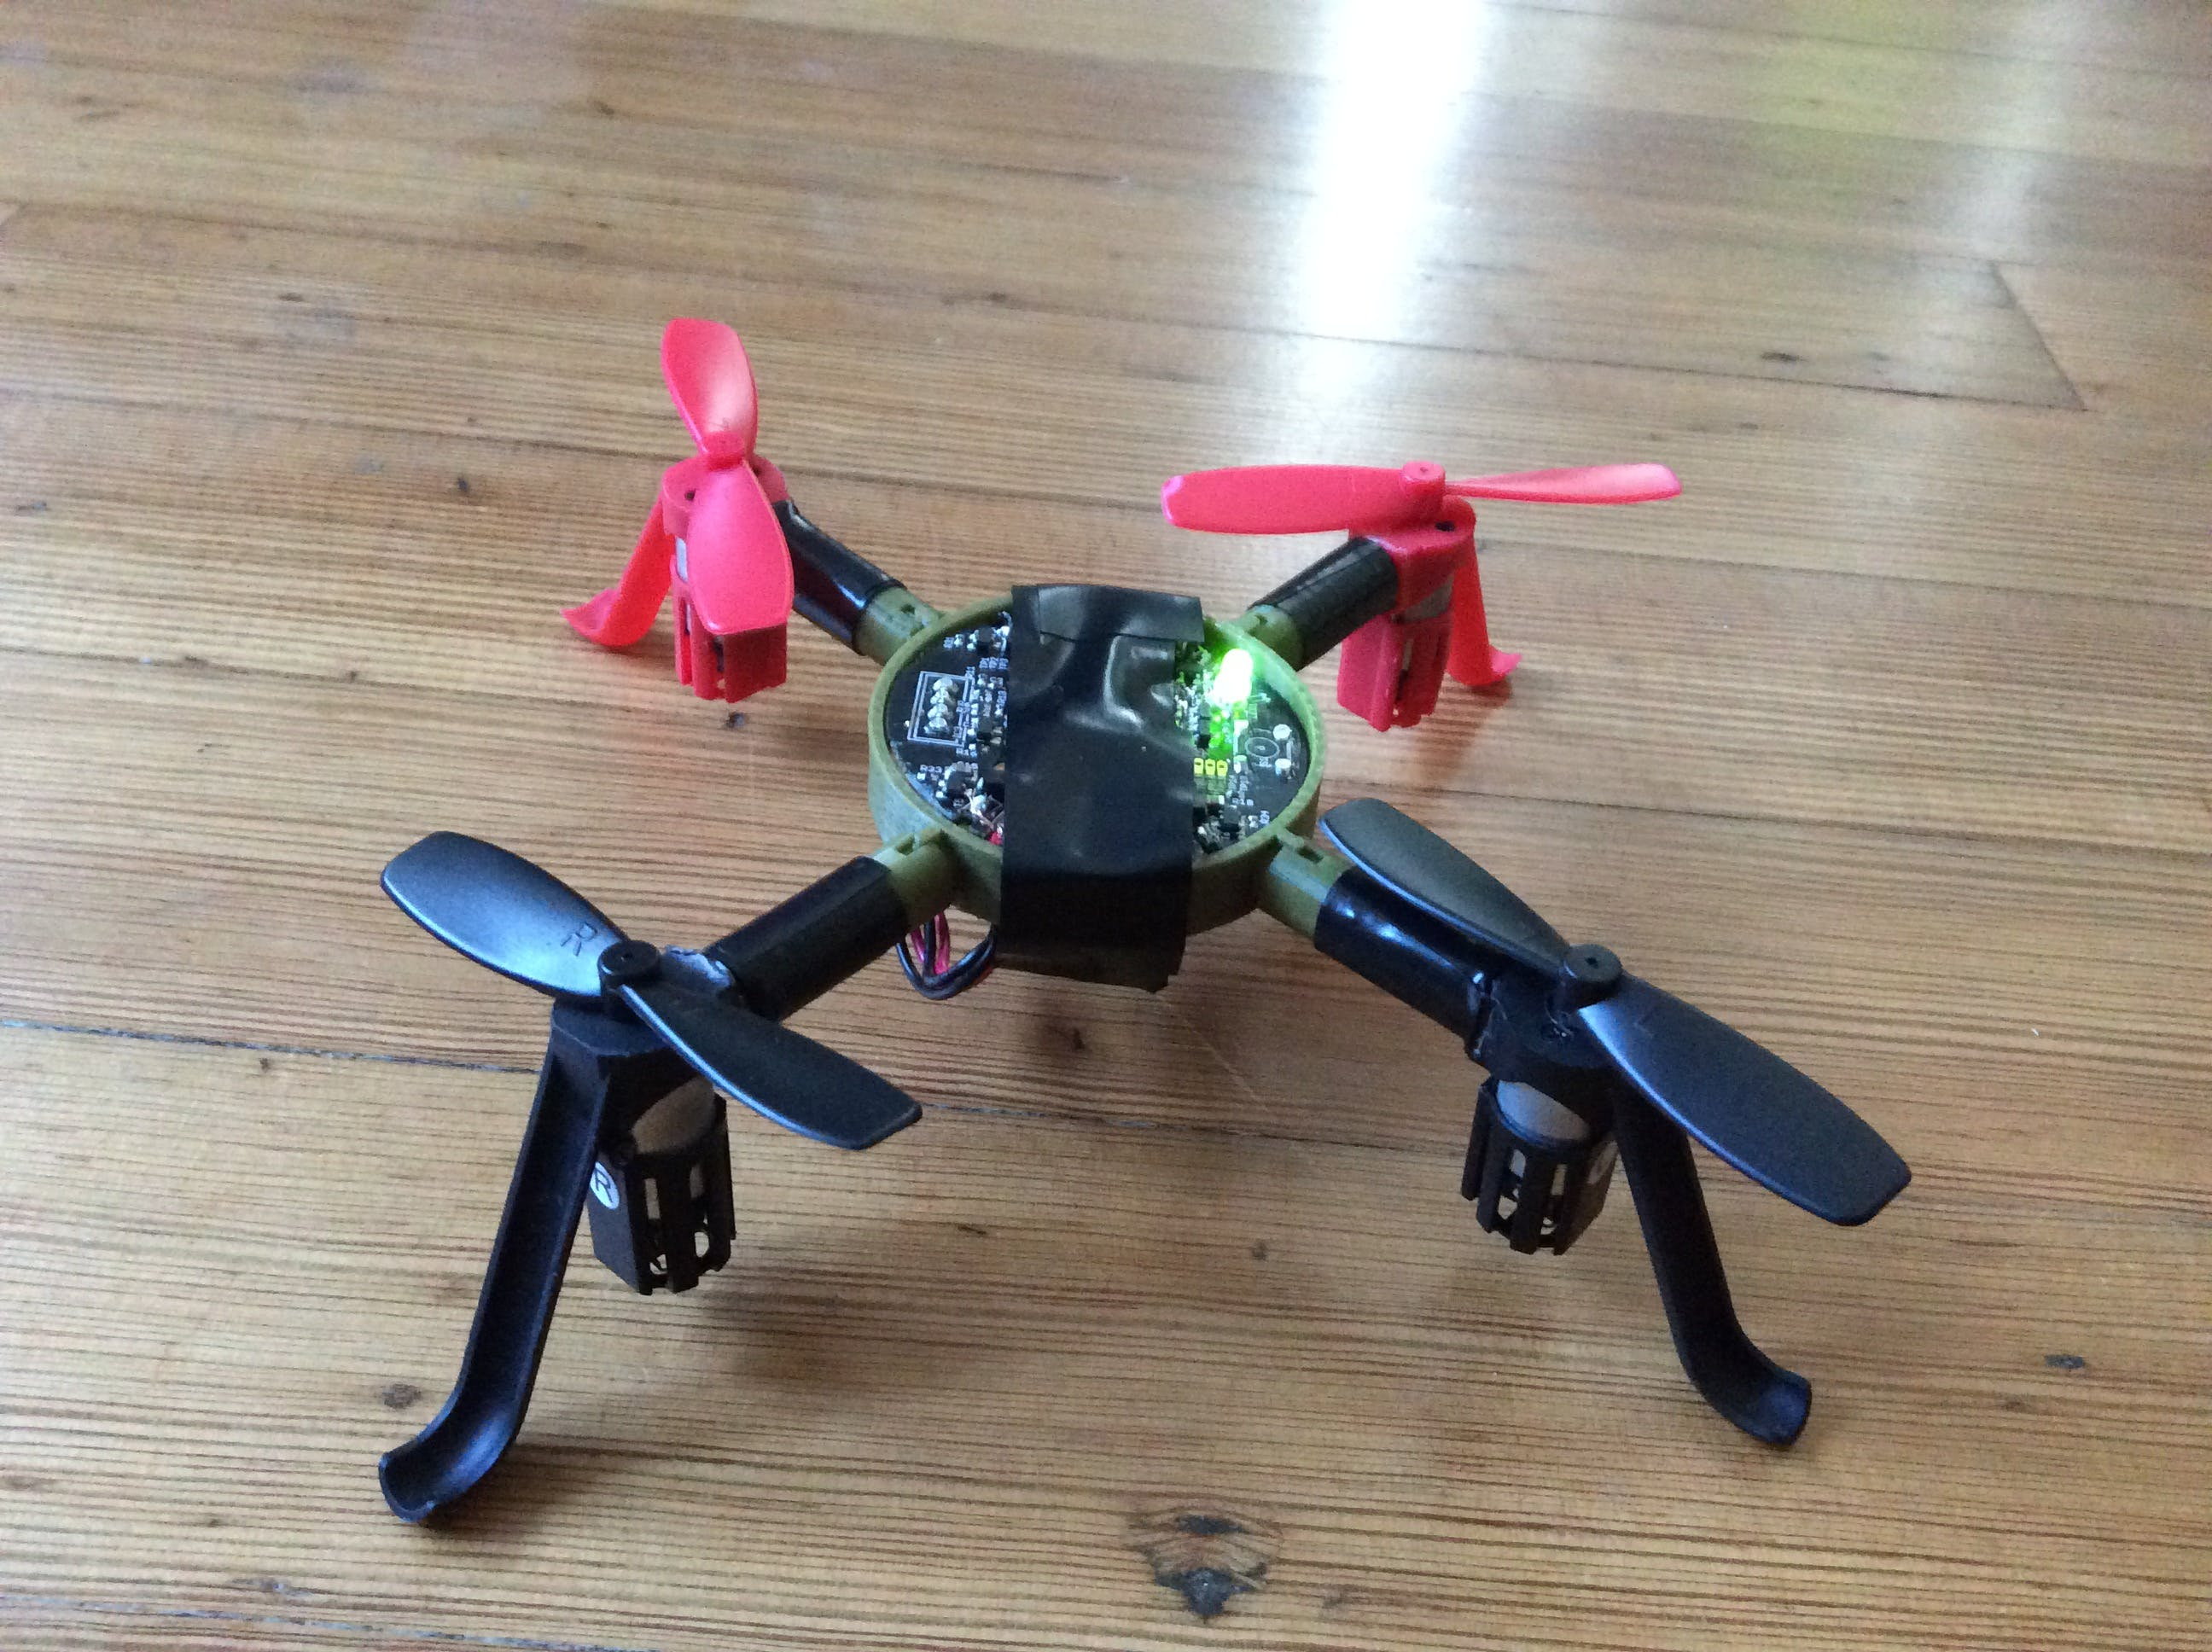 3D-Printed Quadcopter